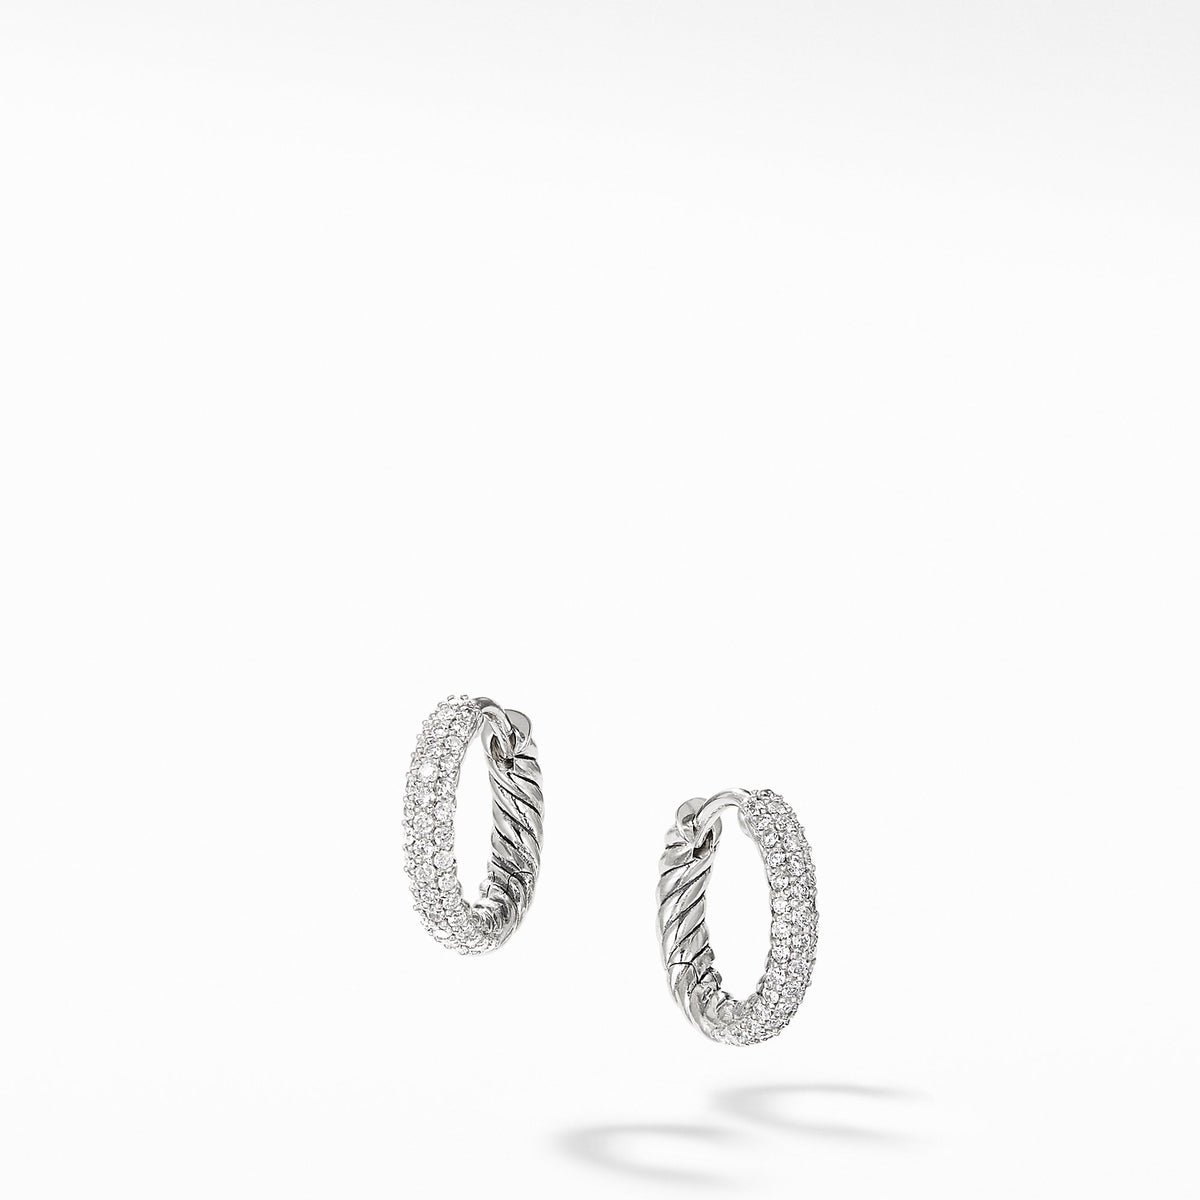 Petite Pave Hoop Earrings with Diamonds